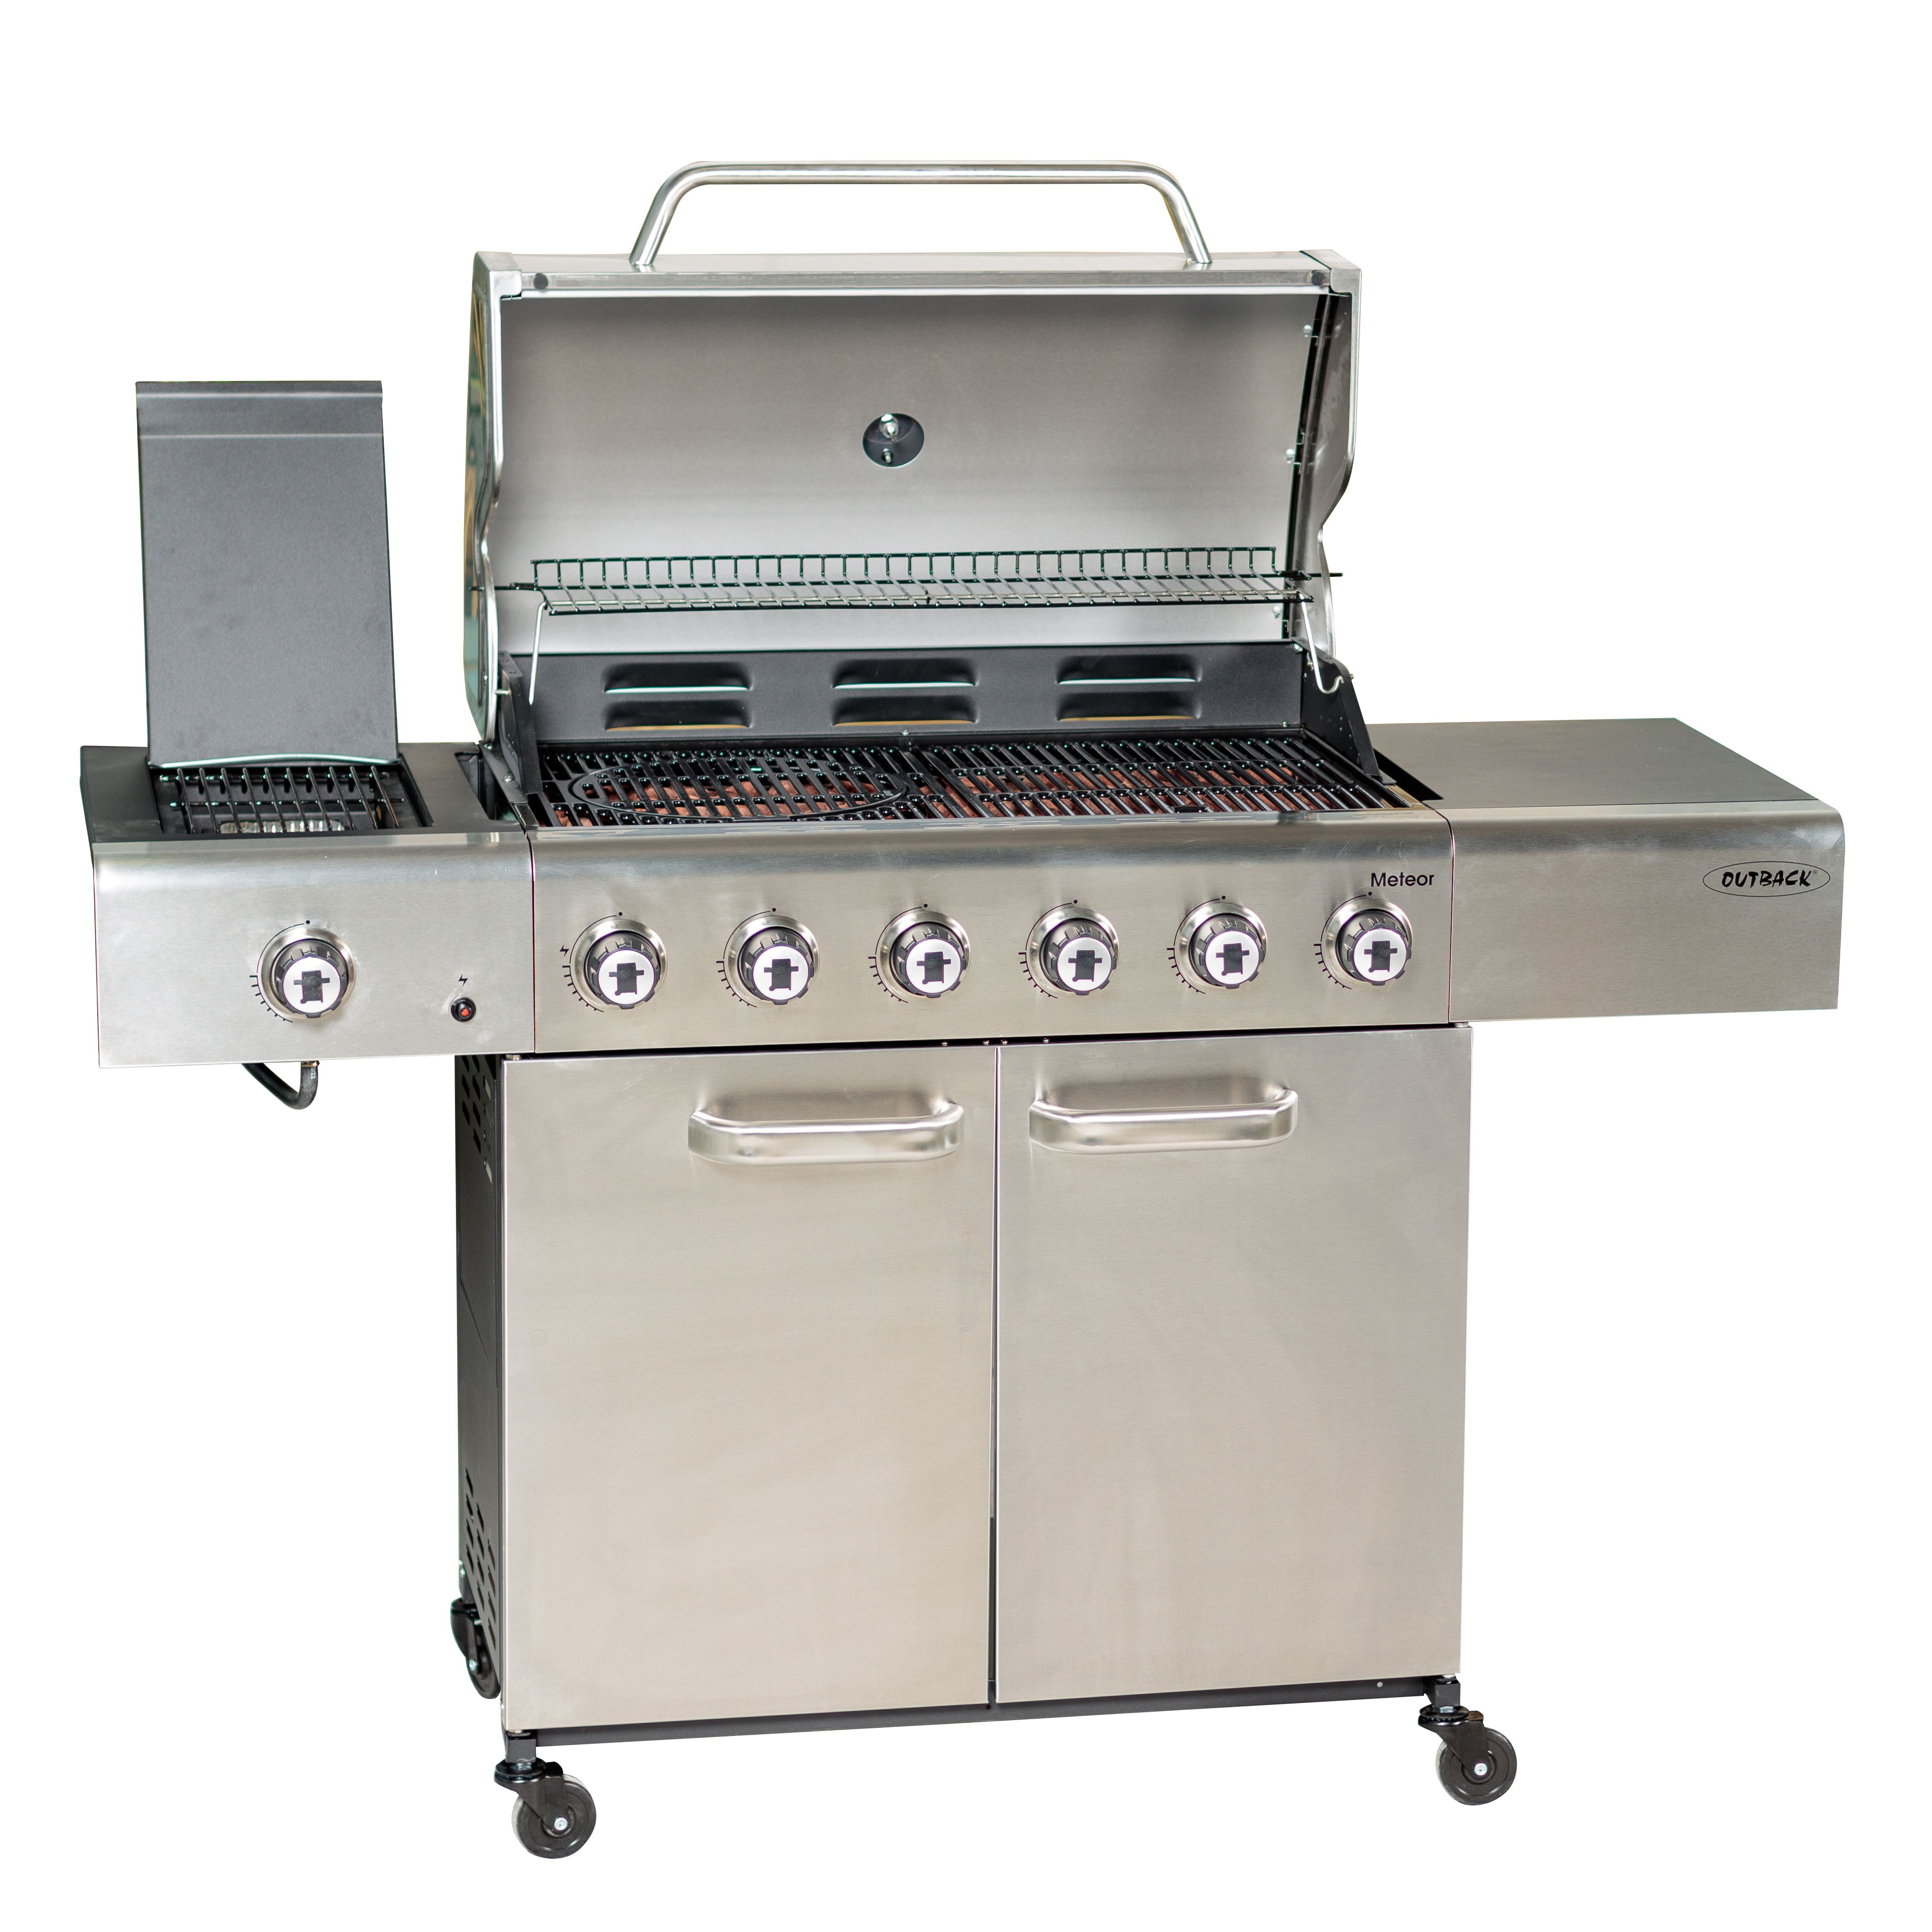 Outback Meteor 6-Burner Gas BBQ with Multi Cook Plate System - Stainless Steel - Robert Dyas